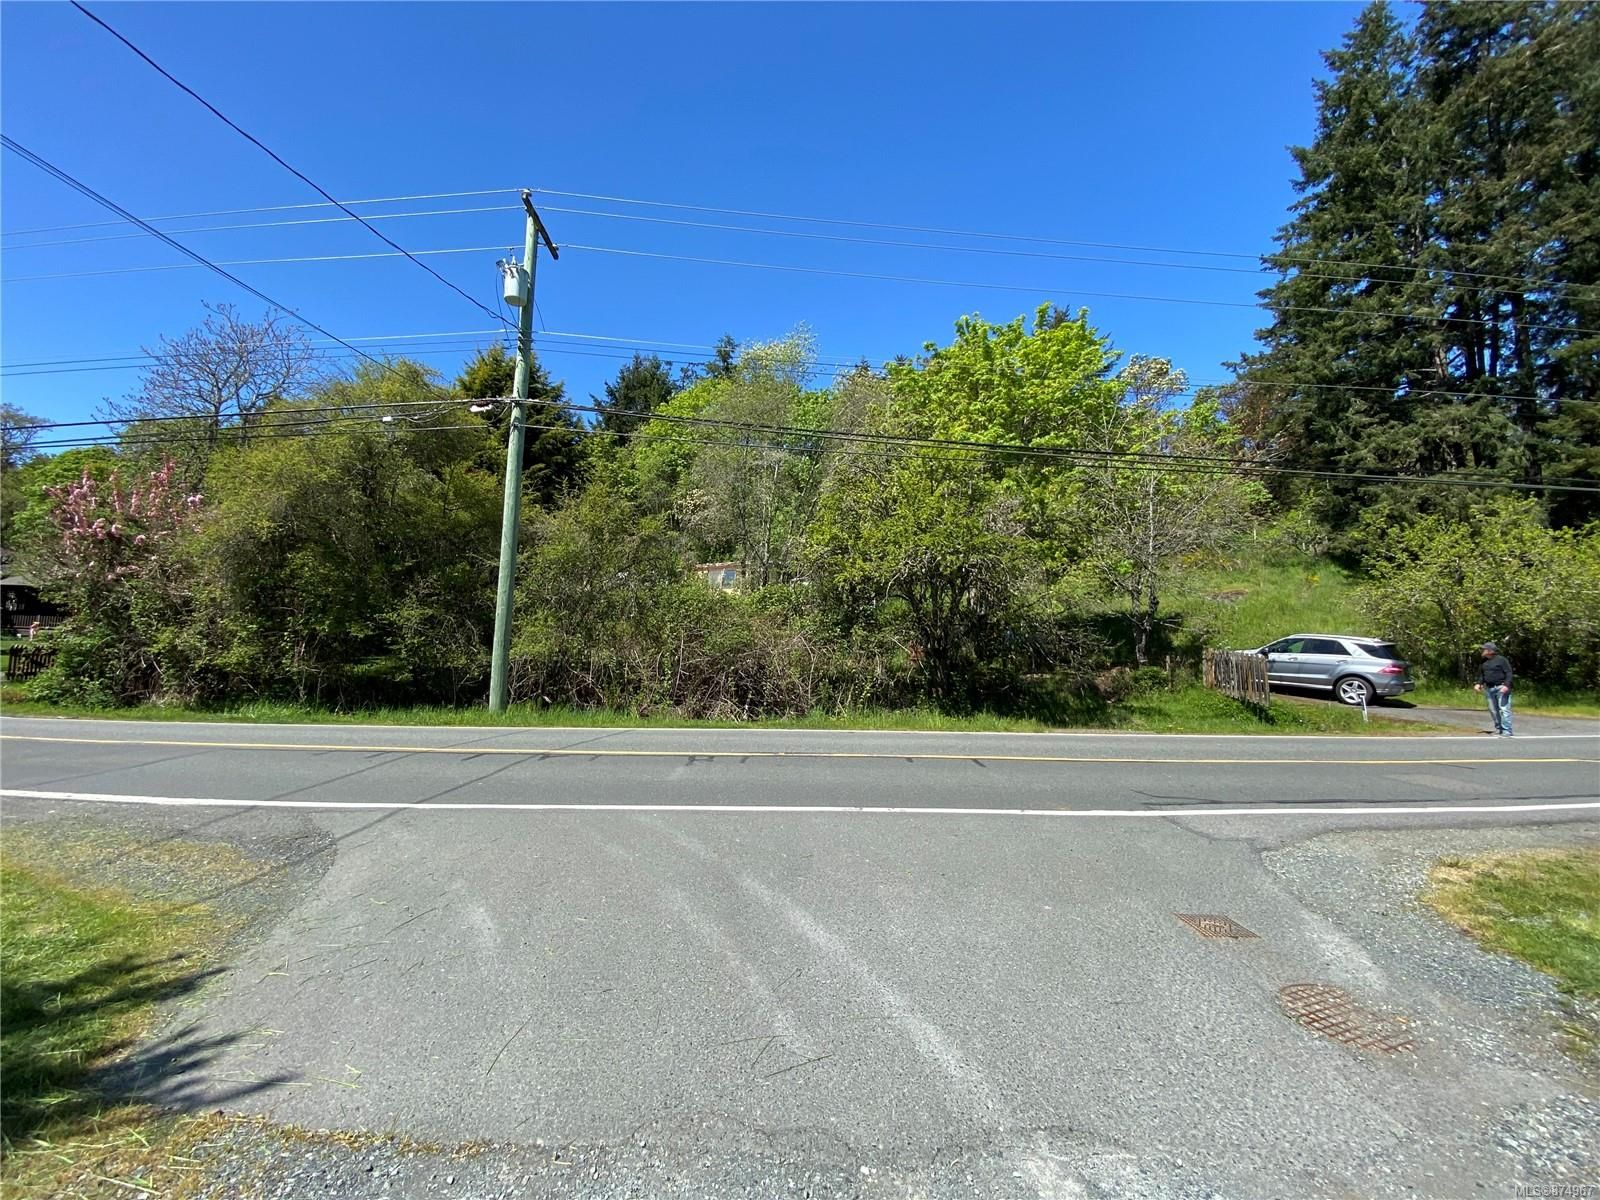 Main Photo: 148 Atkins Rd in : VR Six Mile Land for sale (View Royal)  : MLS®# 874967